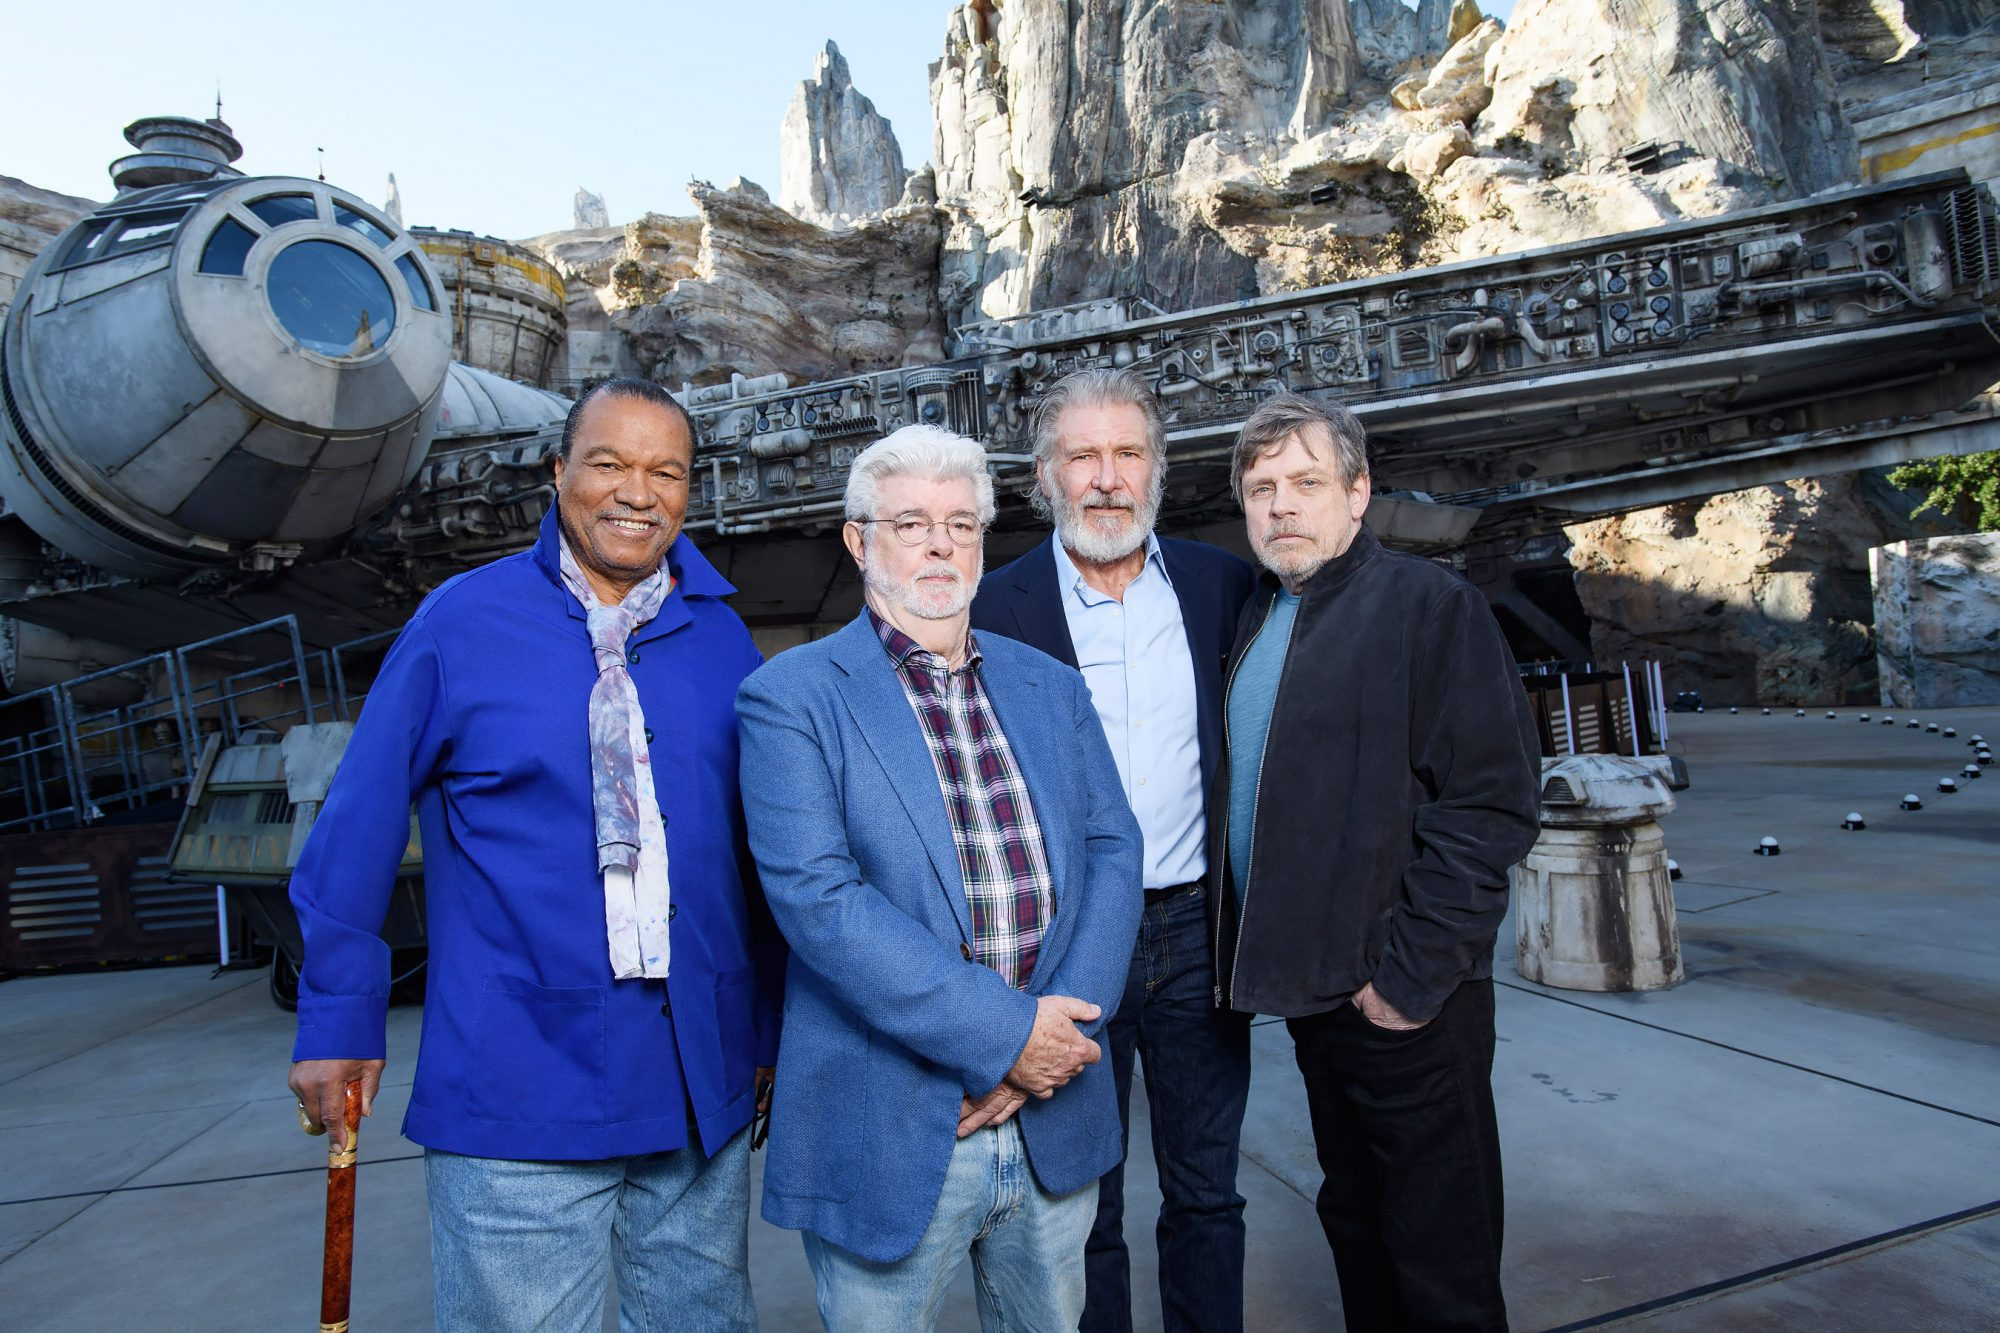 Billy Dee Williams, George Lucas, Harrison Ford and Mark Hamill